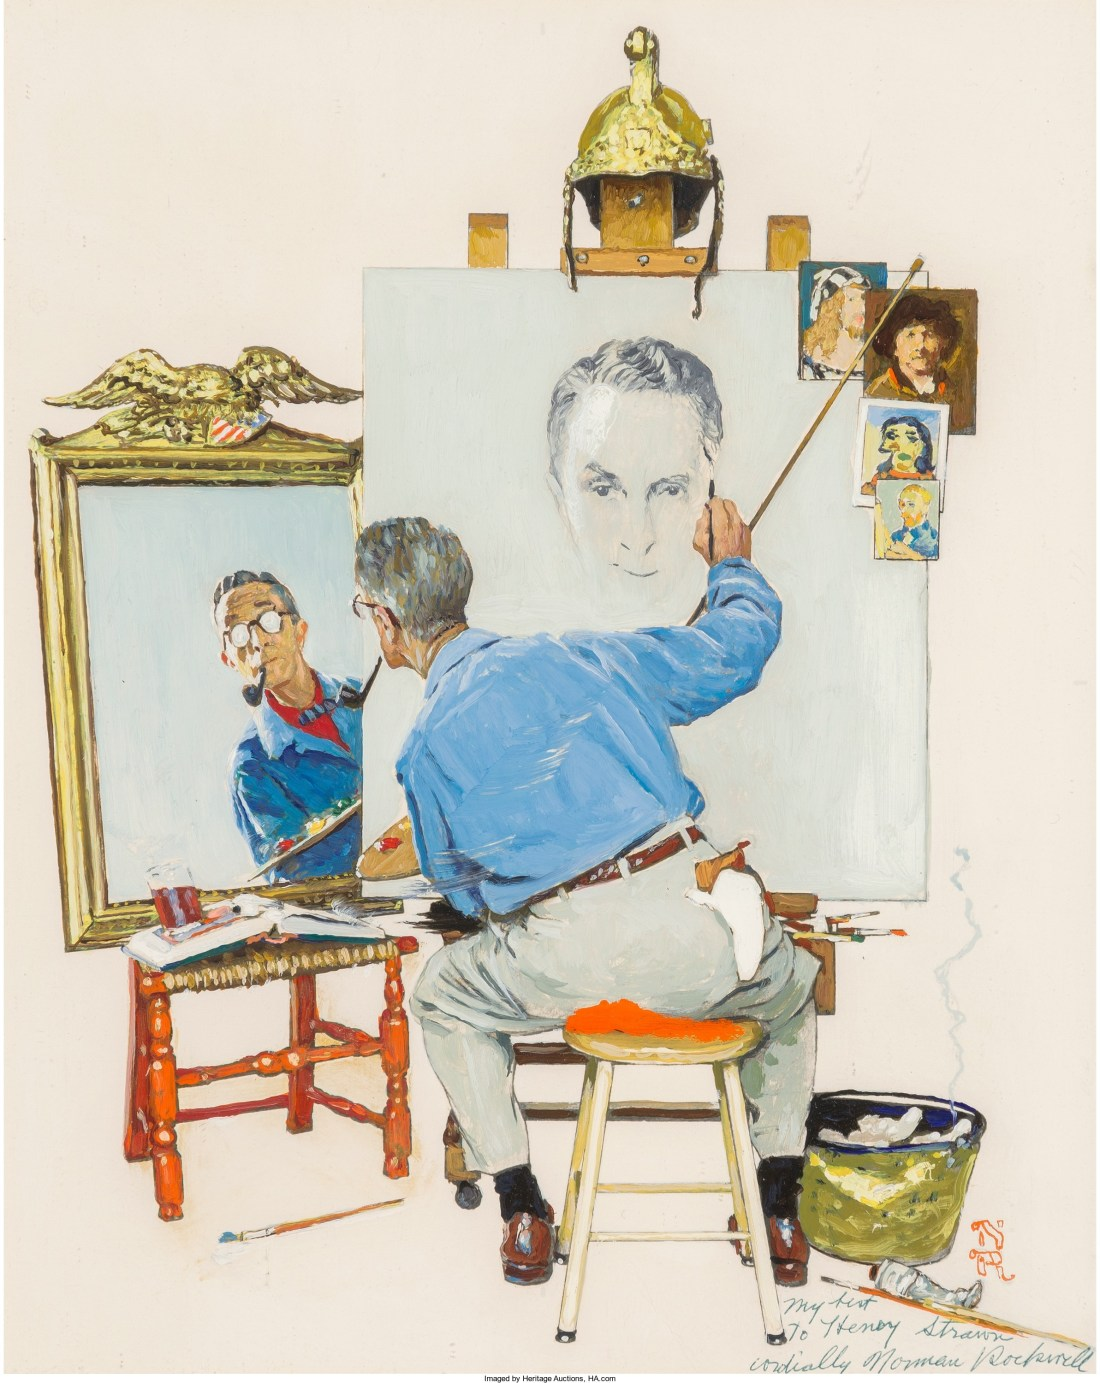 Study for Triple Self Portrait, a 1960 oil on photographic paper laid on panel by Norman Rockwell. The final version graced the cover of the February 13, 1960 edition of The Saturday Evening Post.